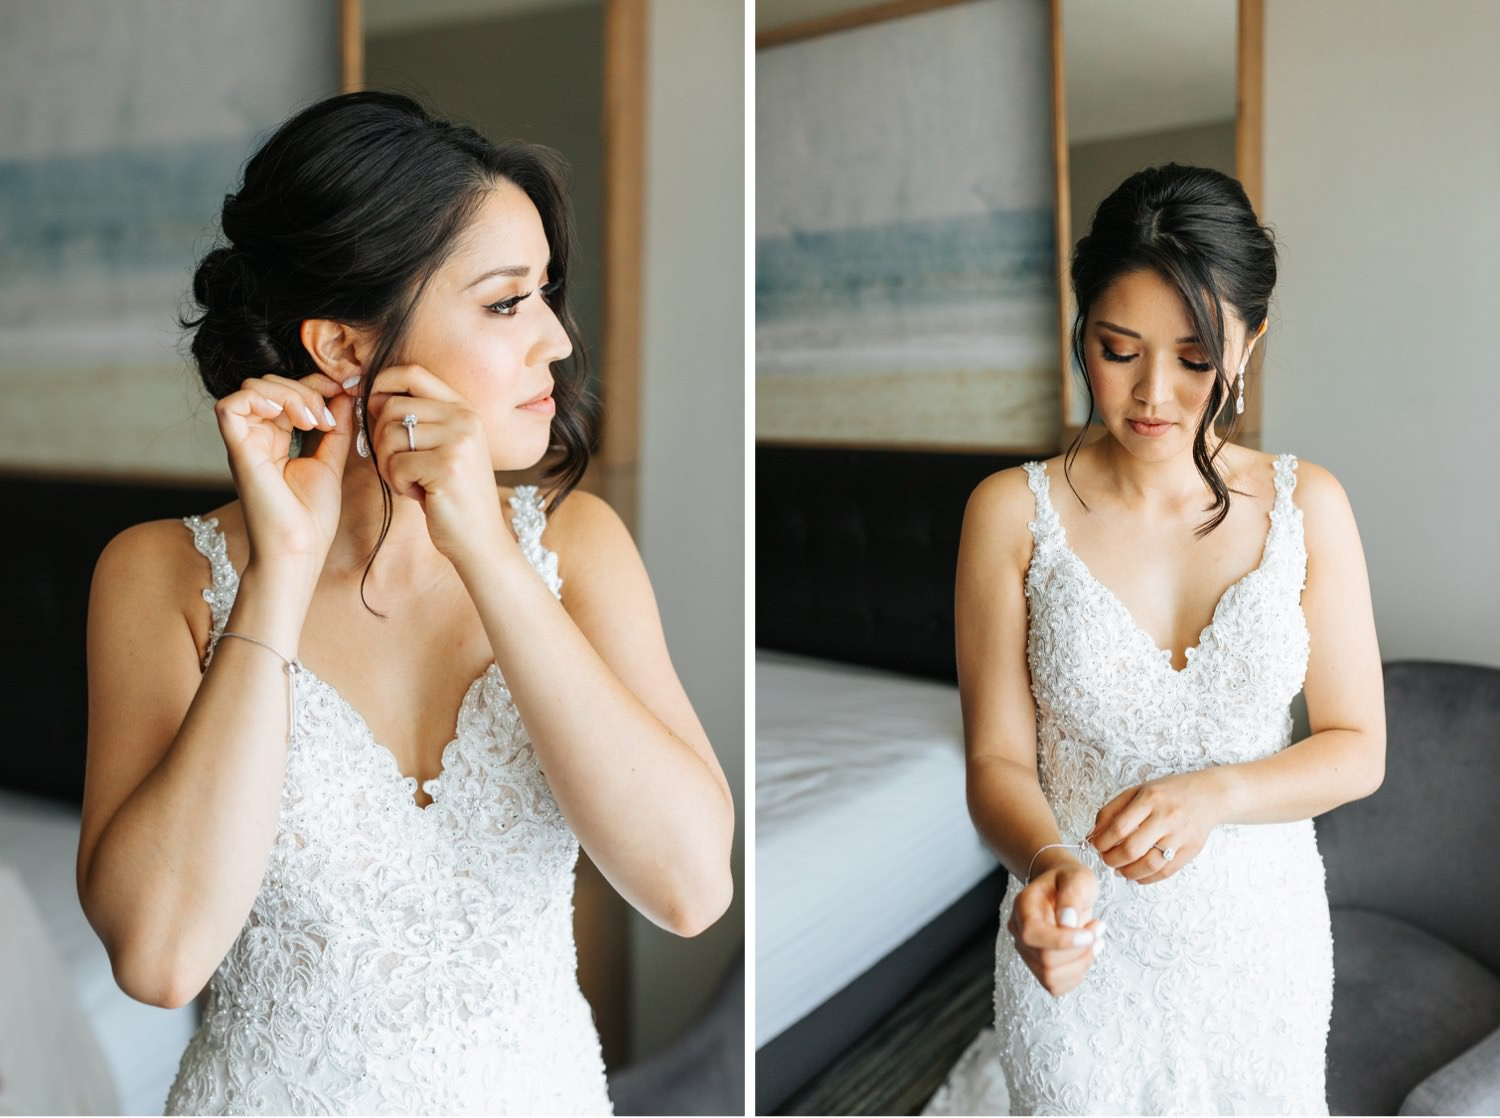 Bride putting on jewelry - https://brittneyhannonphotography.com